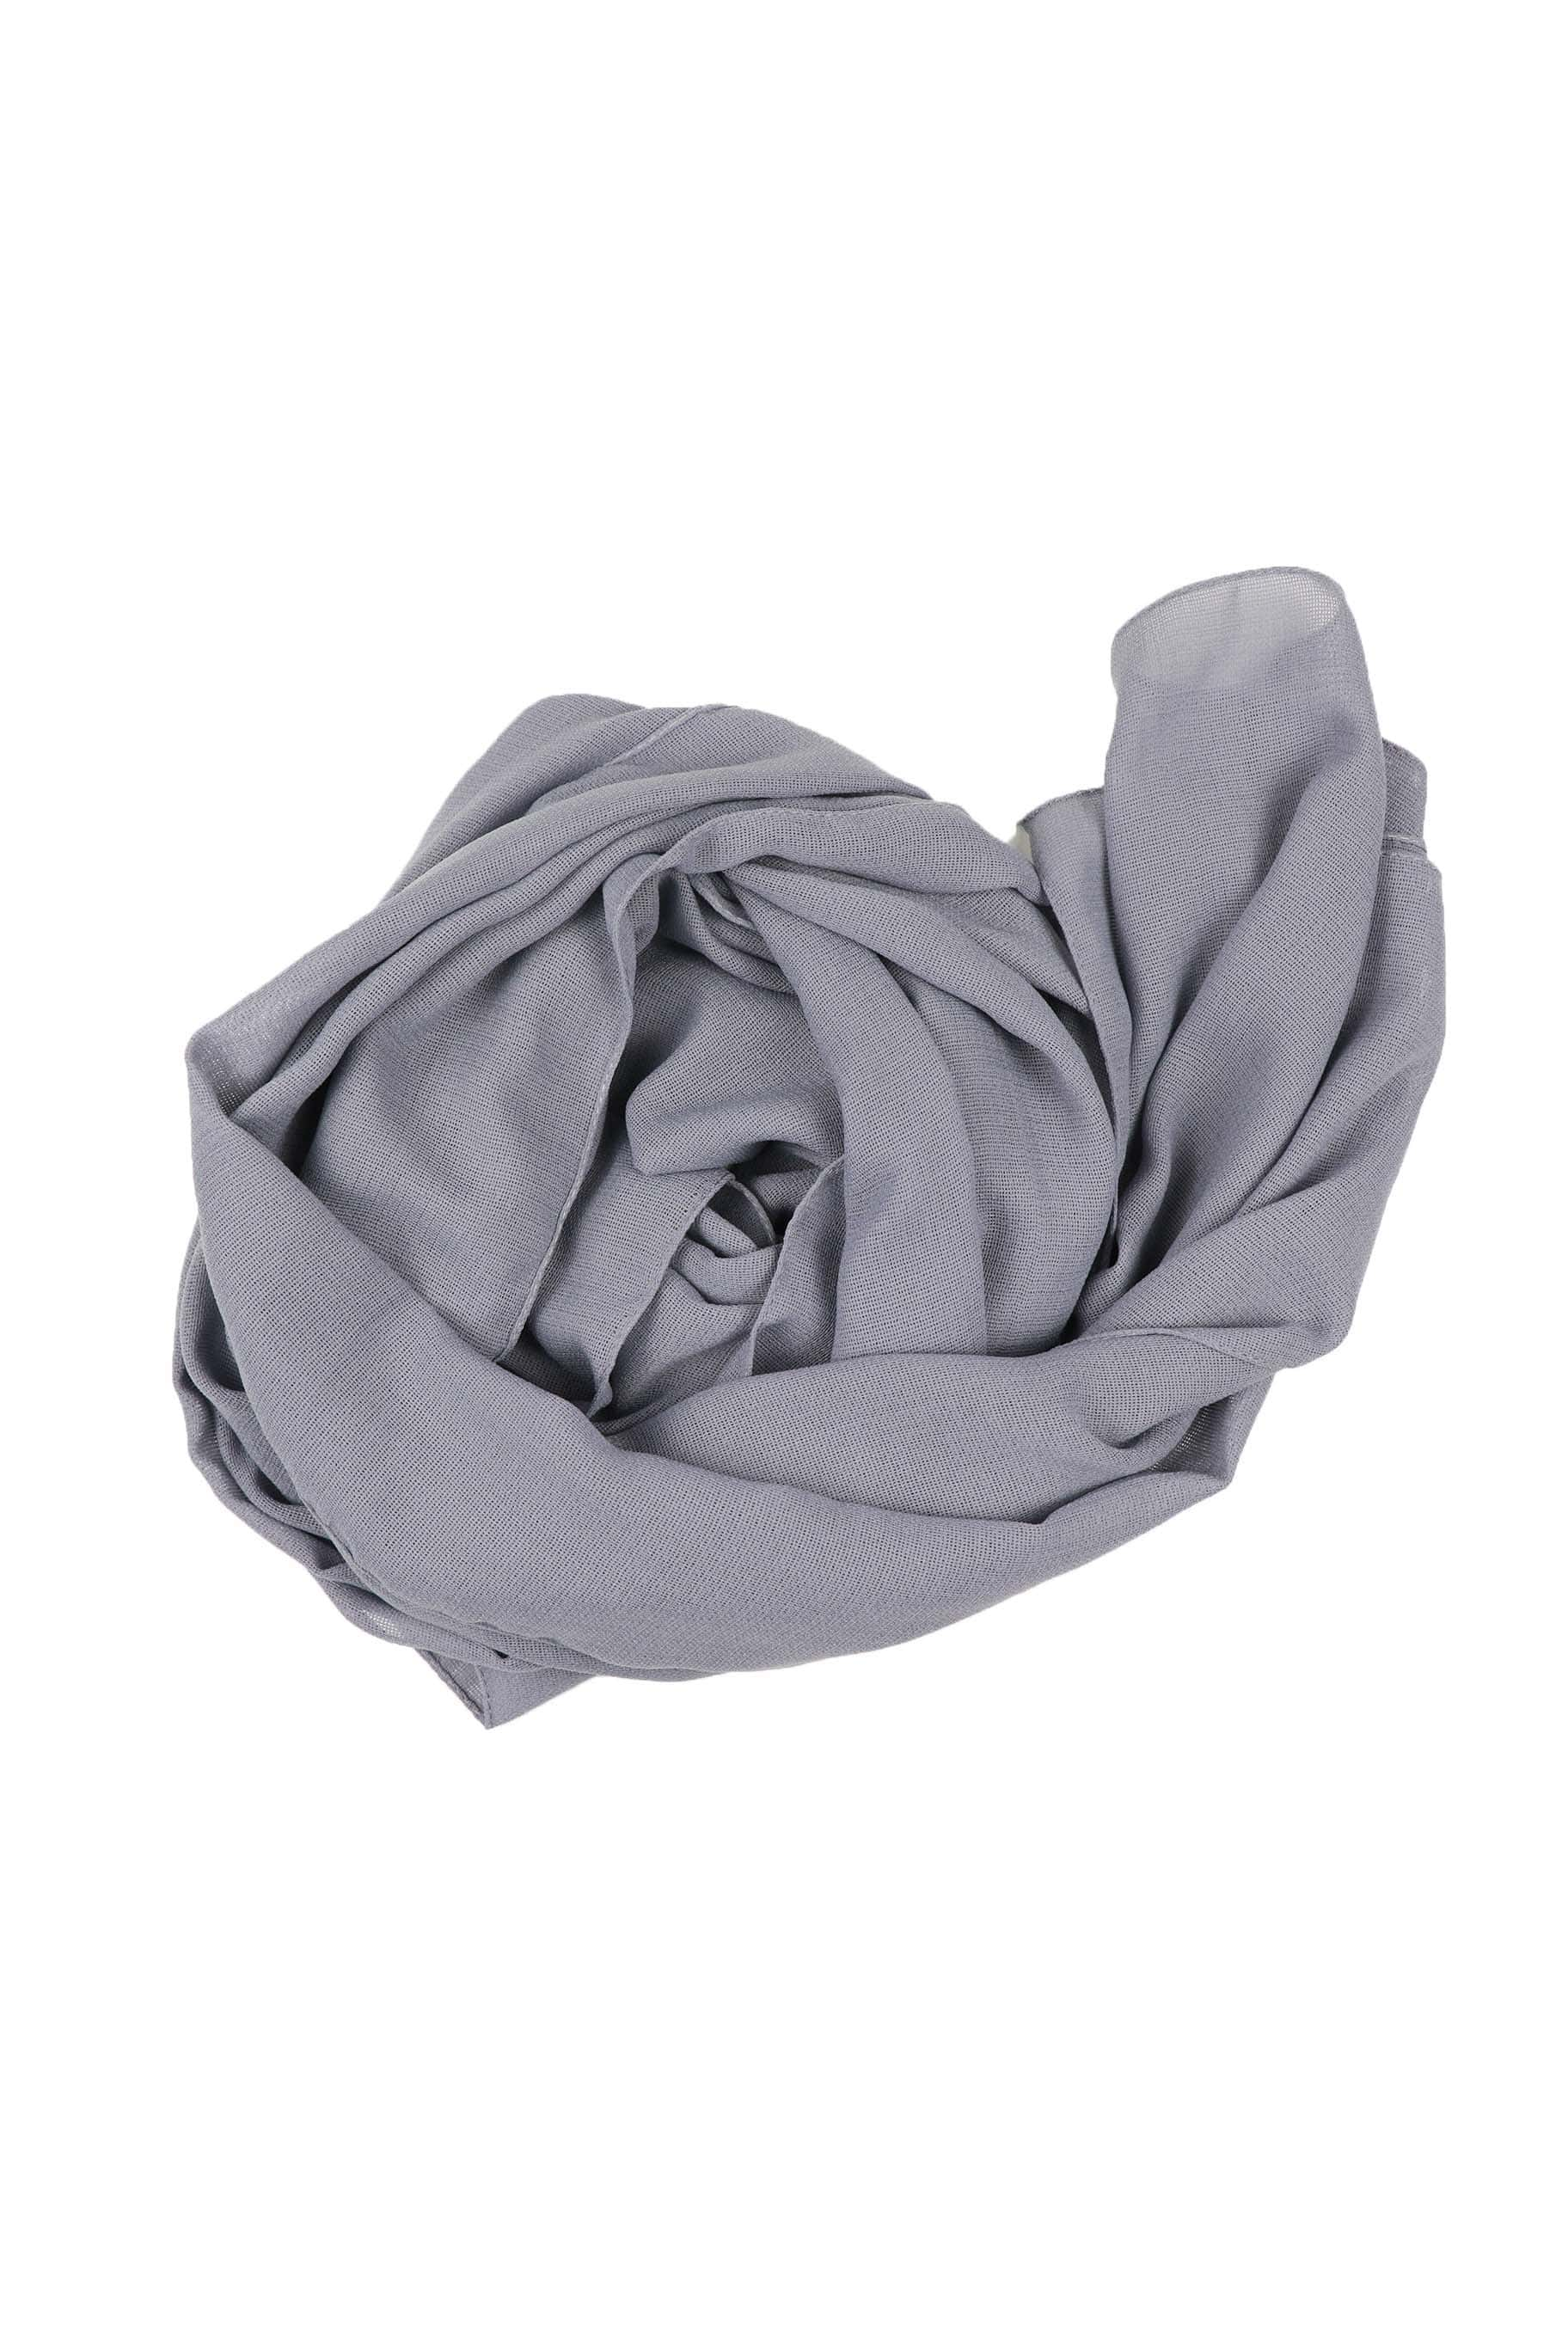 Cement Grey Jute Cotton - Jute-Cotton Hijab - The Modest Look